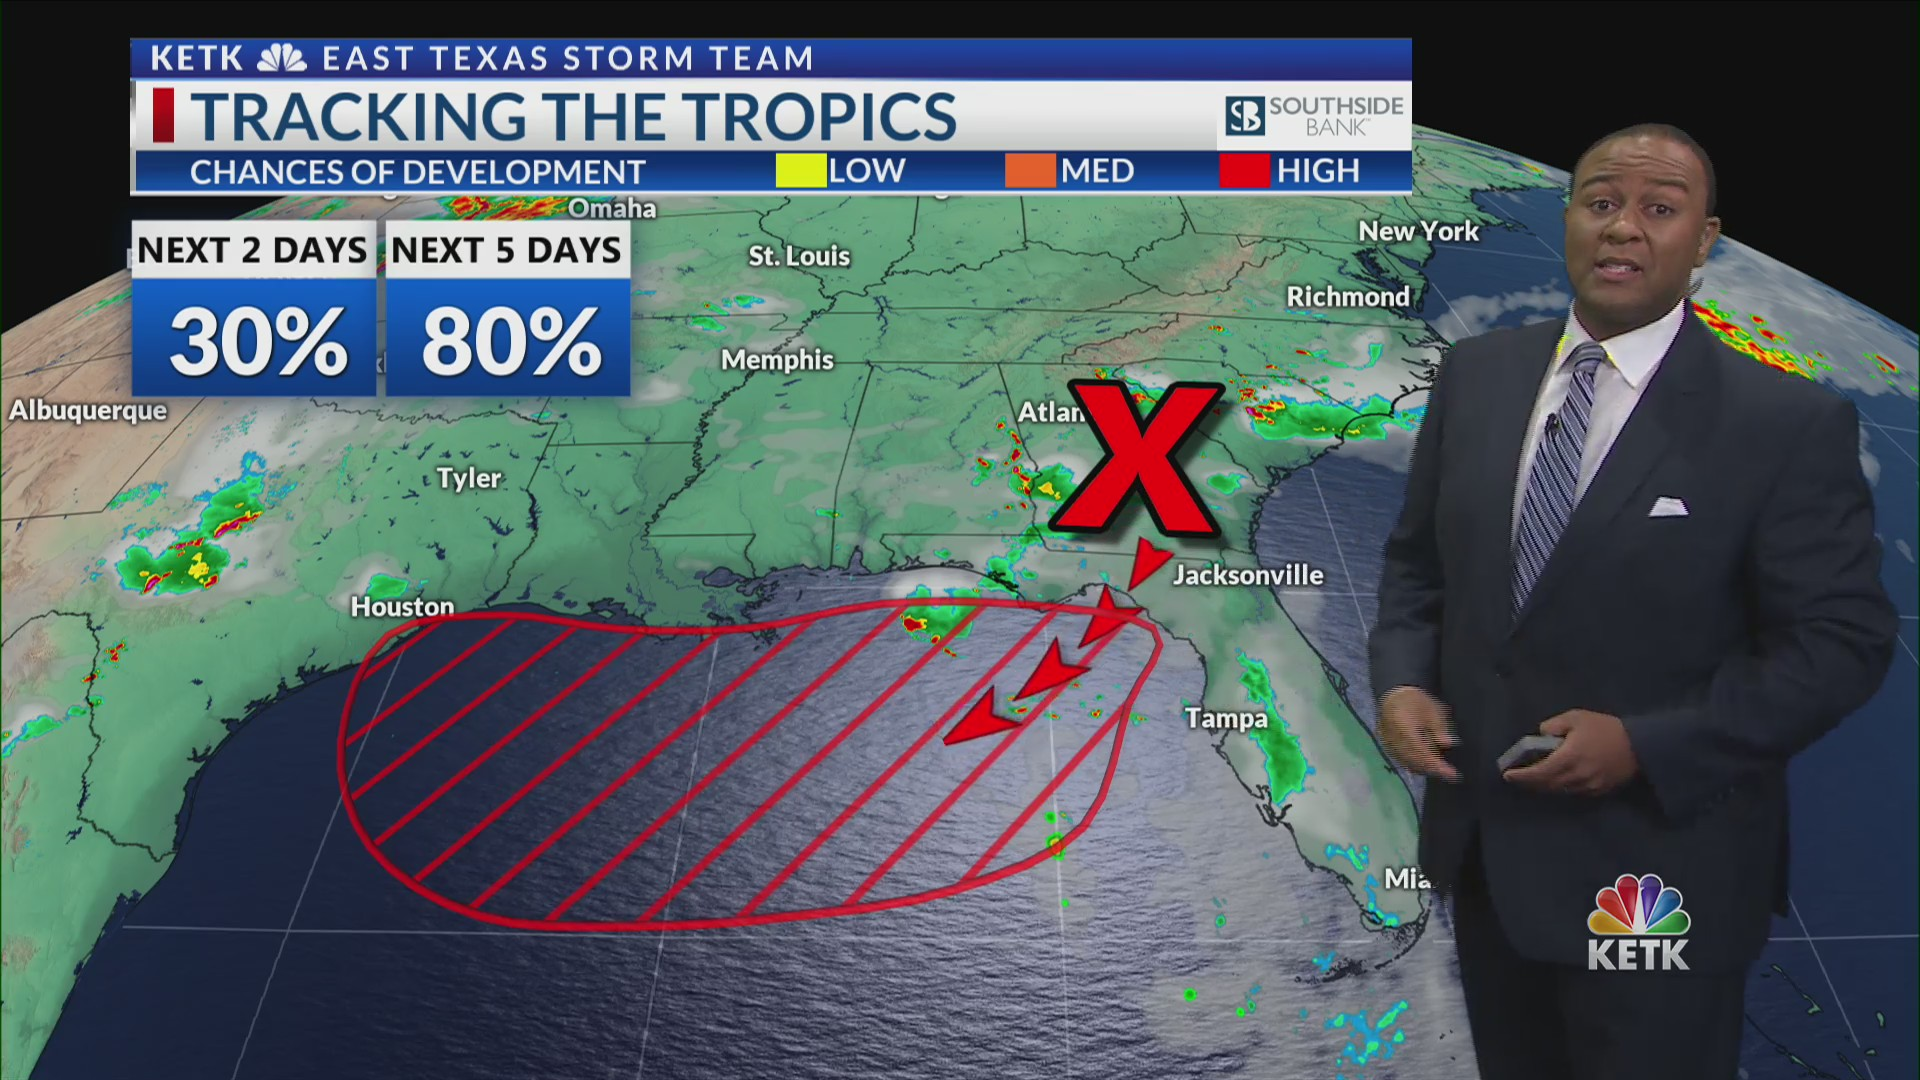 Monday Update: Tropical storm in Gulf could affect East